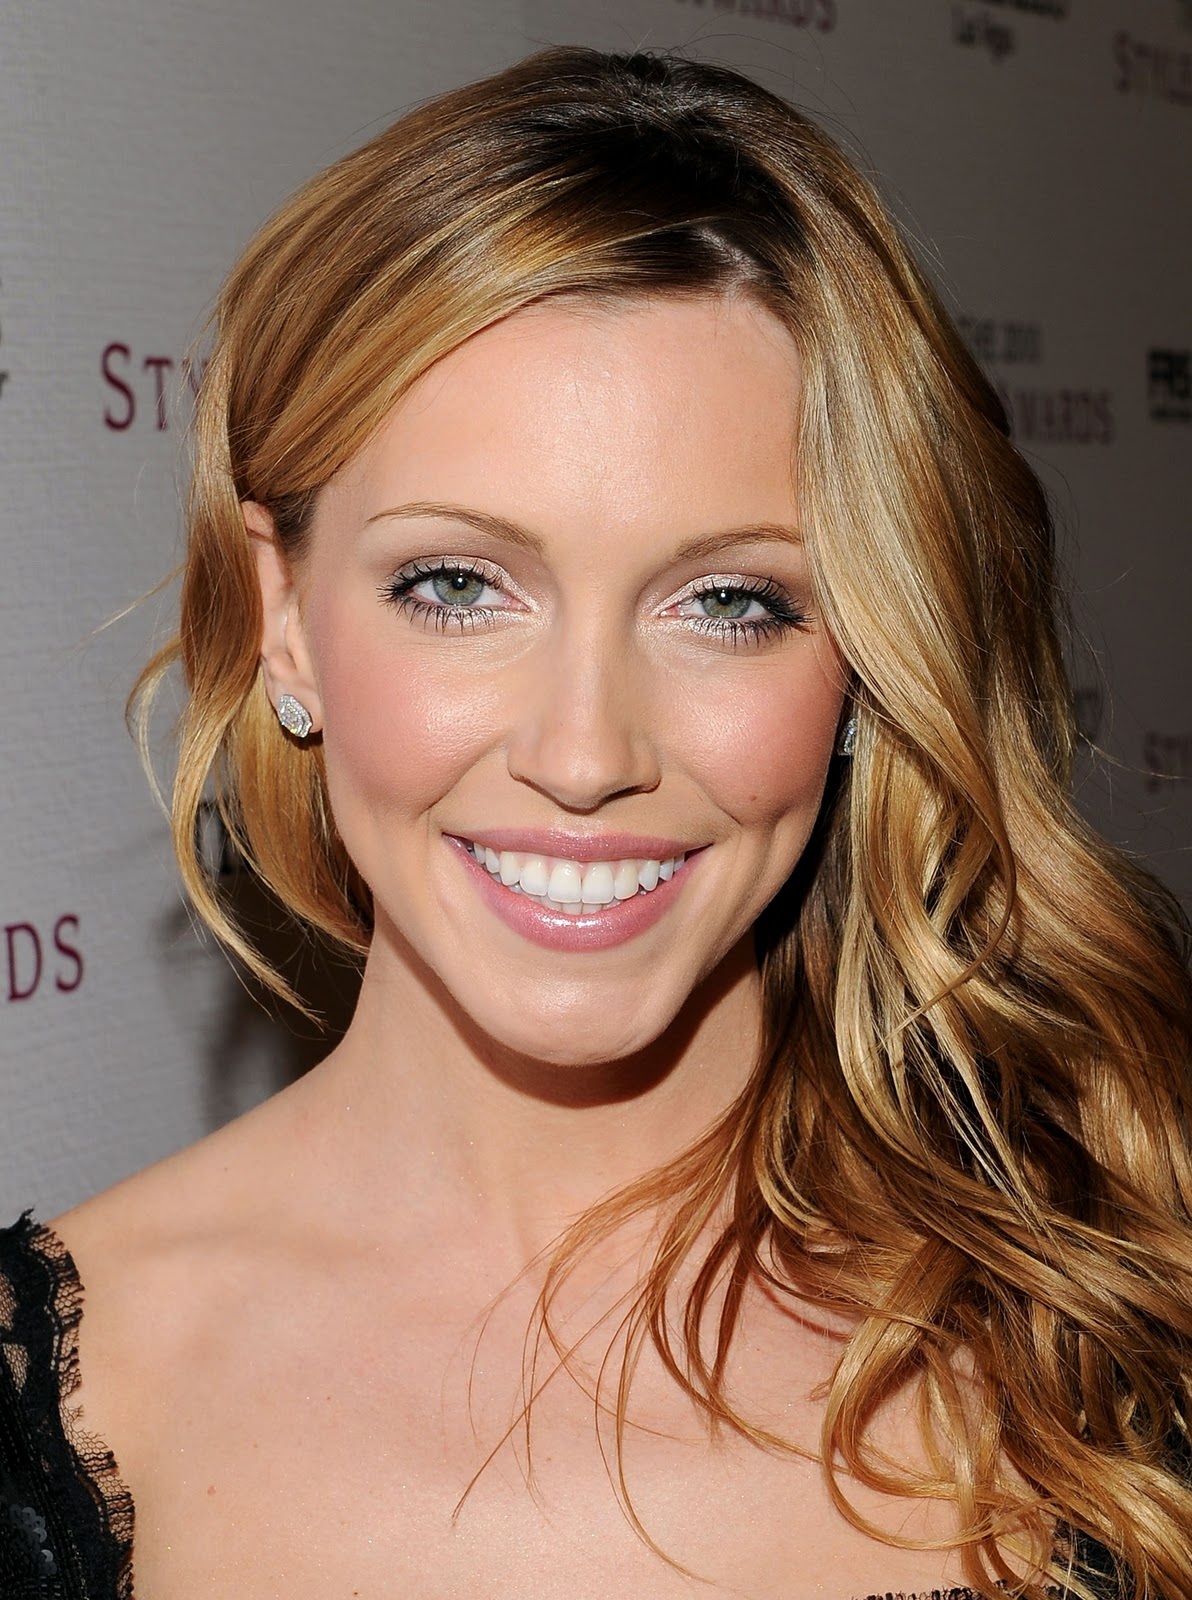 Katie Cassidy Attending The Hollywood Style Awards 2010 At The Hammer